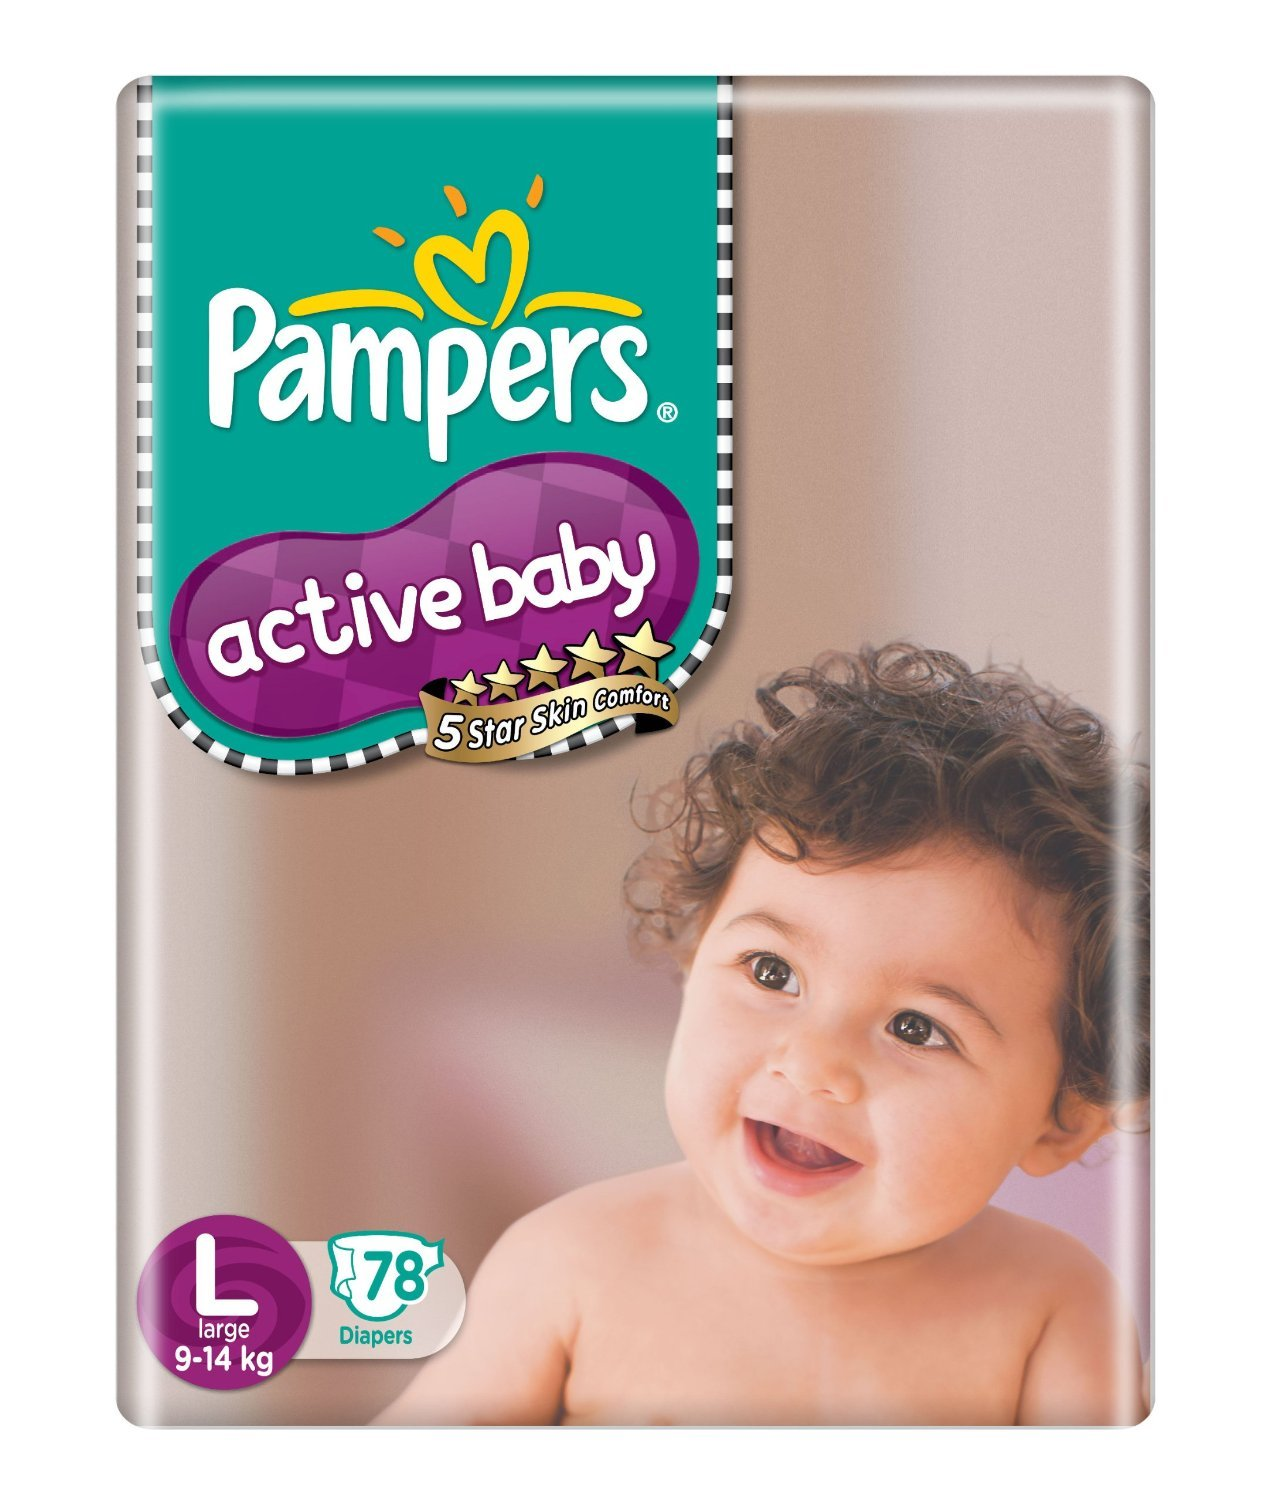 Buy Cheap Diapers in India starting at Rs as on 05 Dec The lowest prices are obtained from leading online stores for easy and quick online comparison. Browse through a wide range of products: compare prices, read specifications & reviews, view pictures and share lowest prices with your friends.